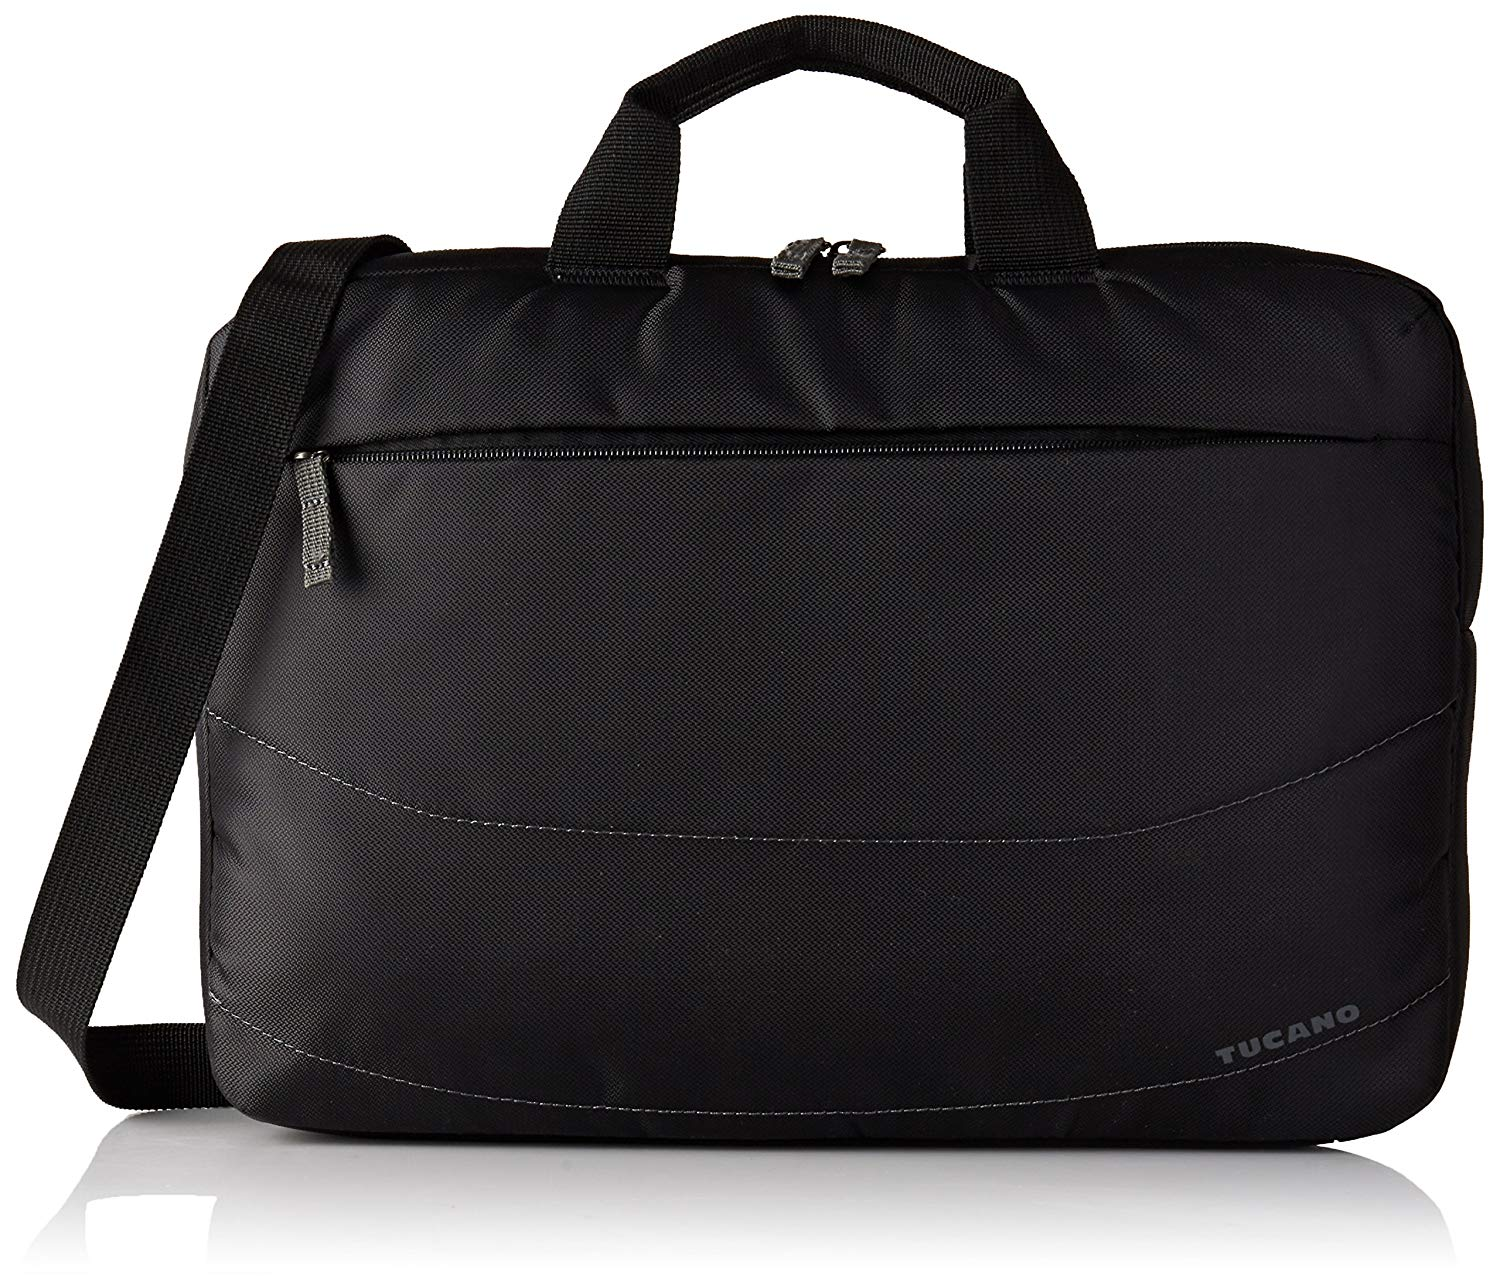 "Tucano Idea Slim bag for Ultrabook 15"" and notebook 15.6"", Black"